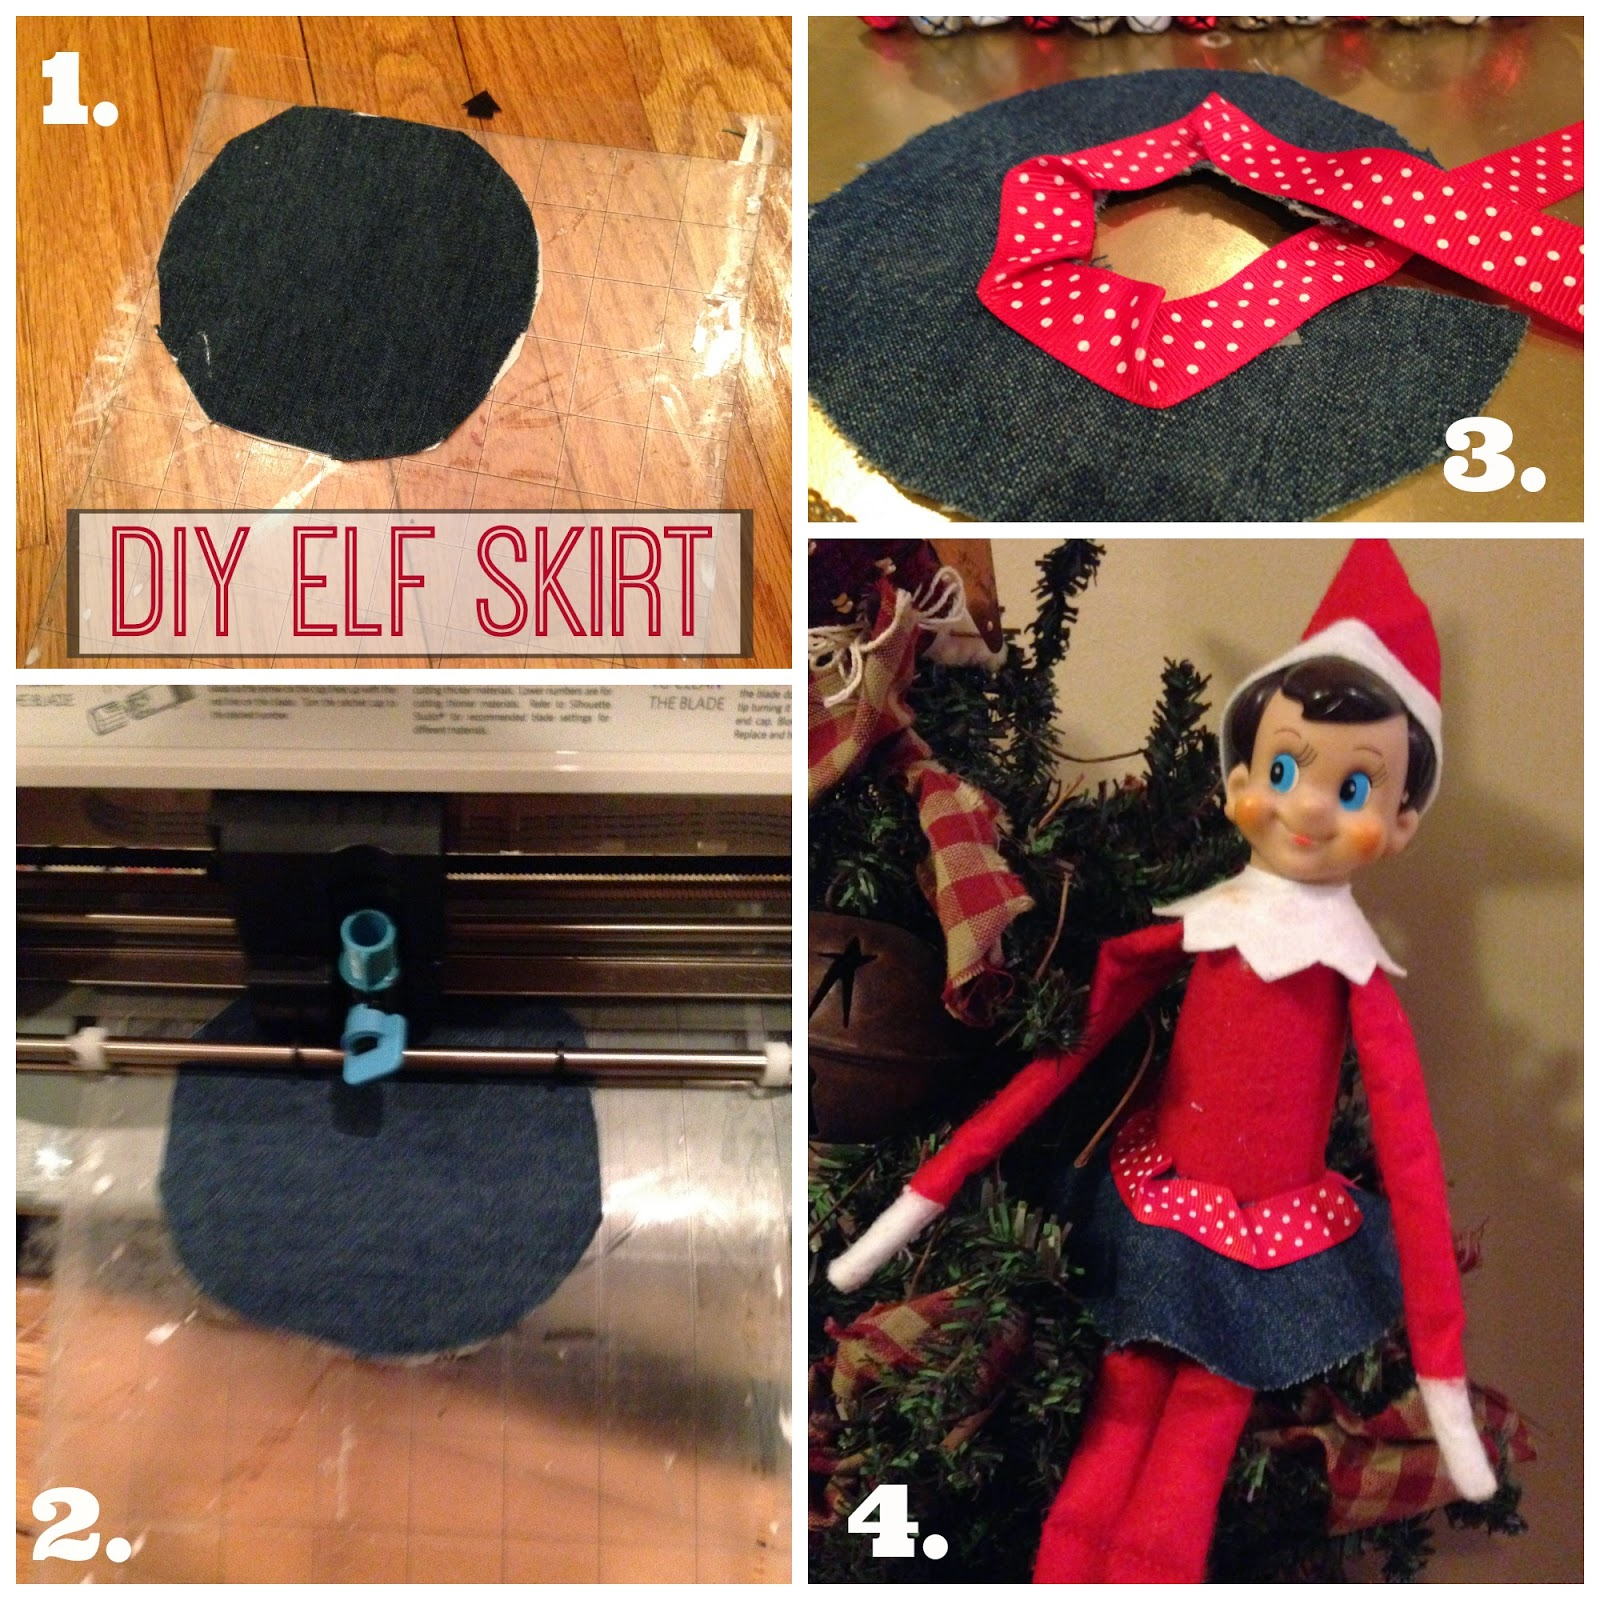 Elf on the shelf, clothes, Silhouette tutorial, Silhouette Studio, free cut files, DIY, do it yourself